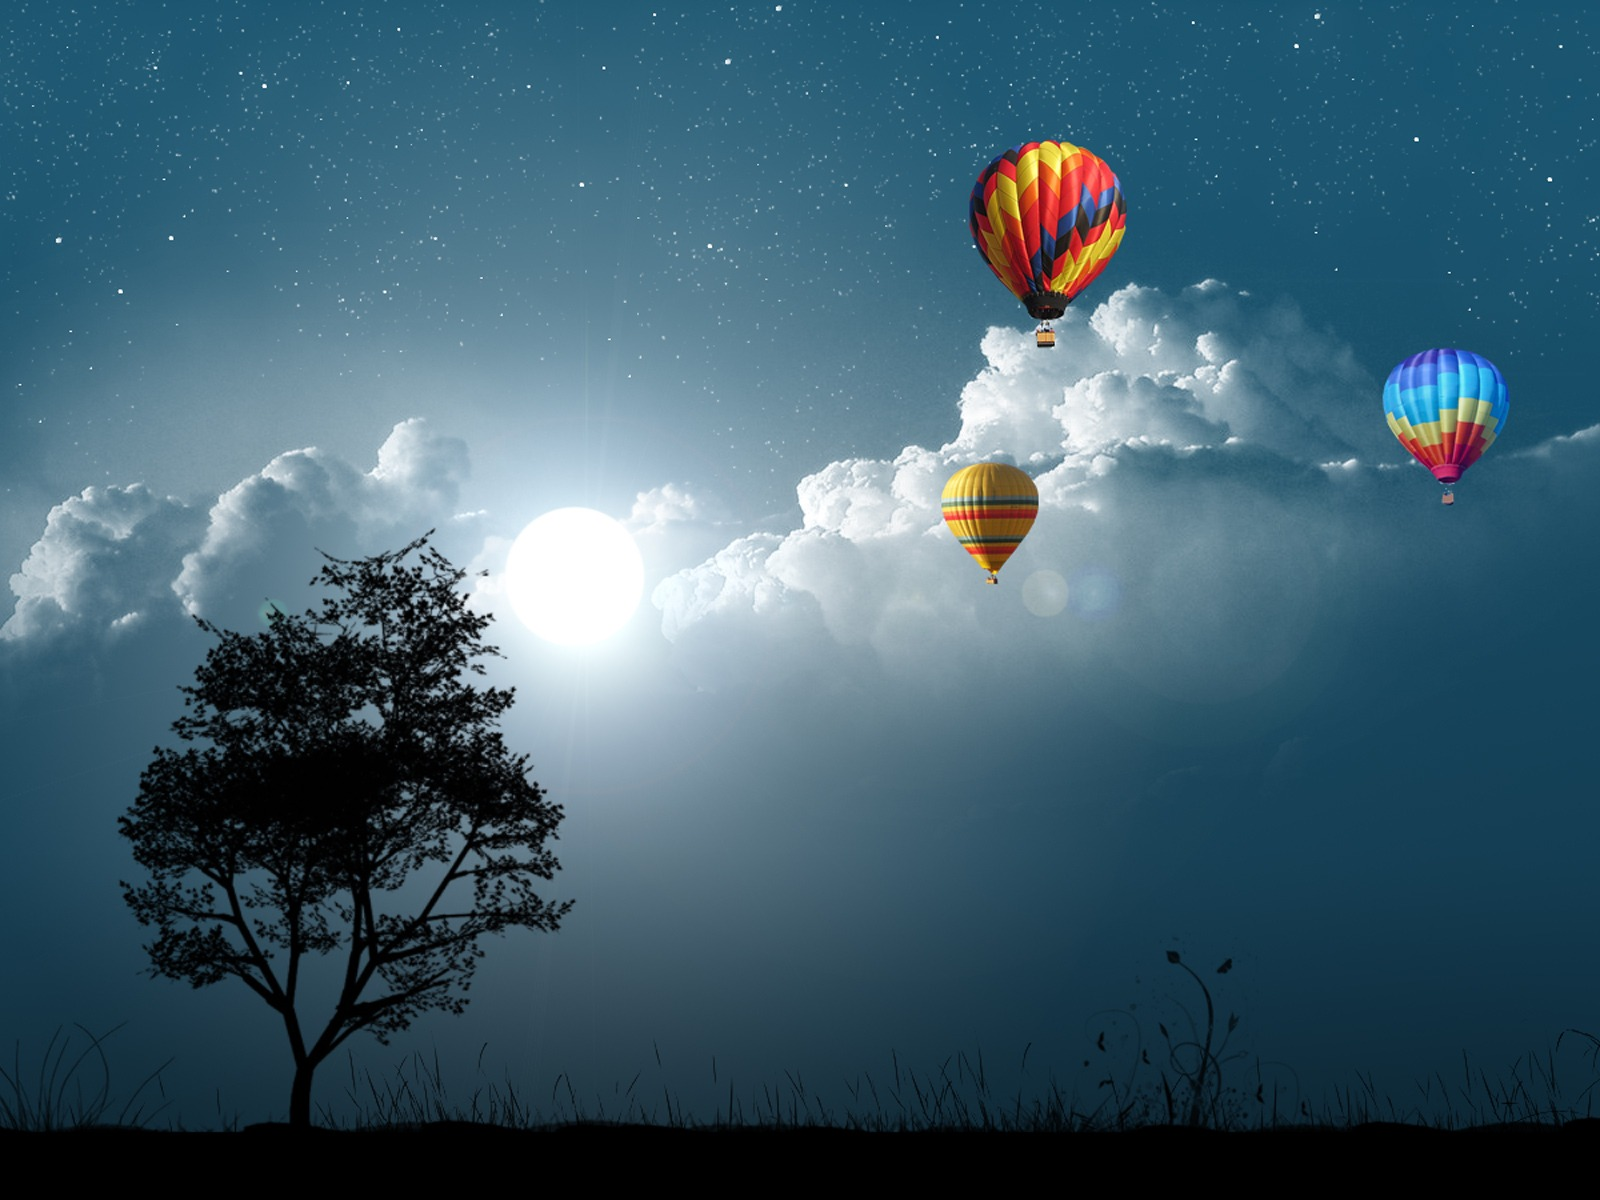 Balloon Night Wallpaper Photo Manipulated Nature Wallpapers